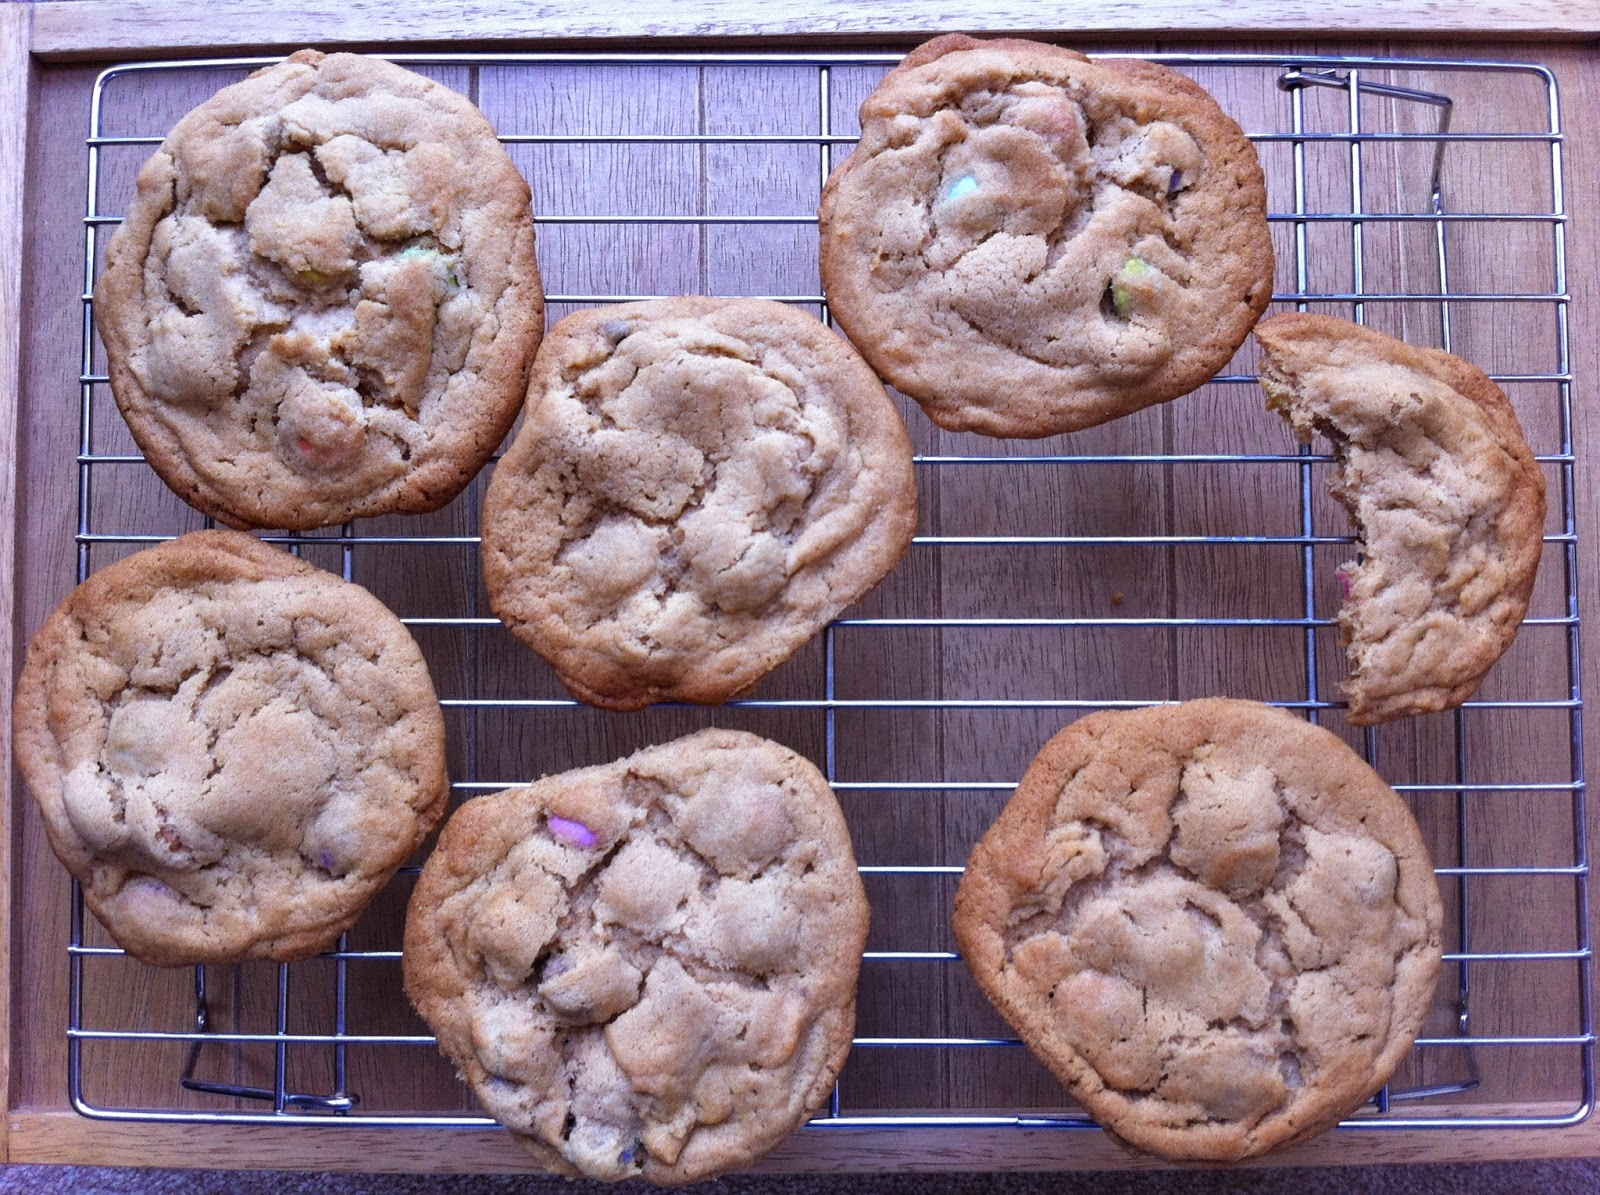 Cookies cooling on a wire rack